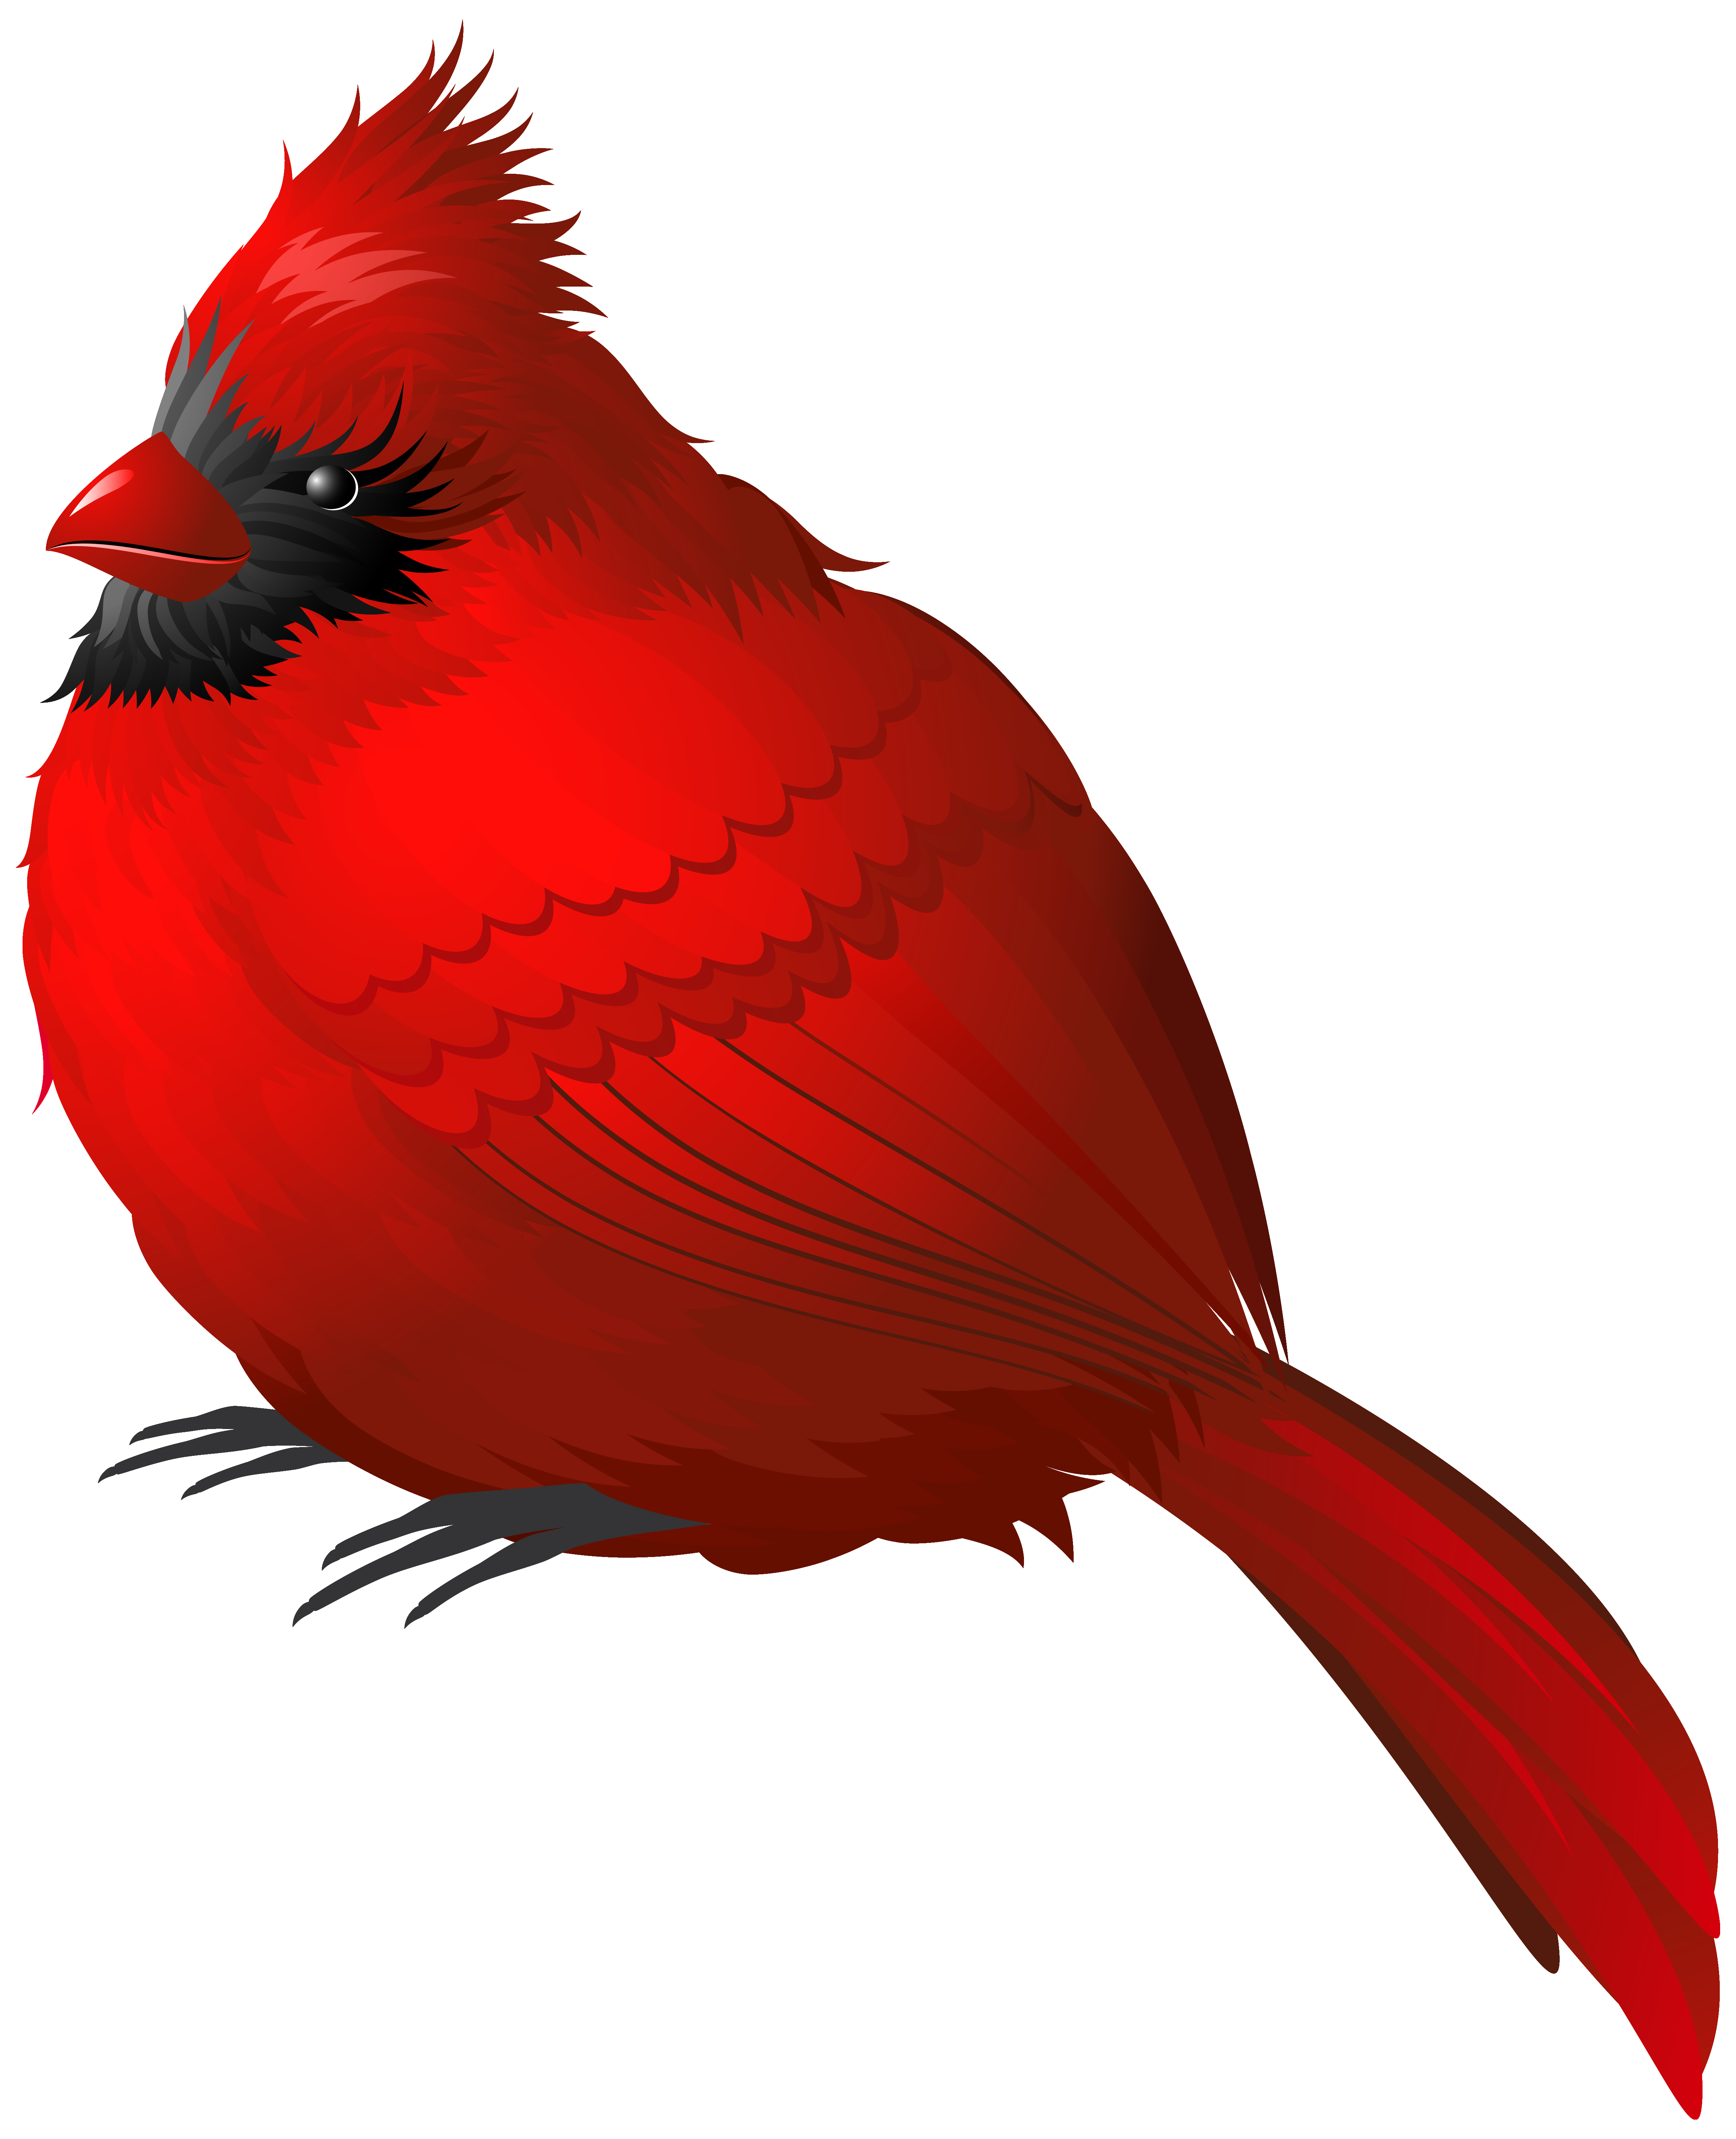 Free Cardinal Bird Png, Download Free Clip Art, Free Clip.